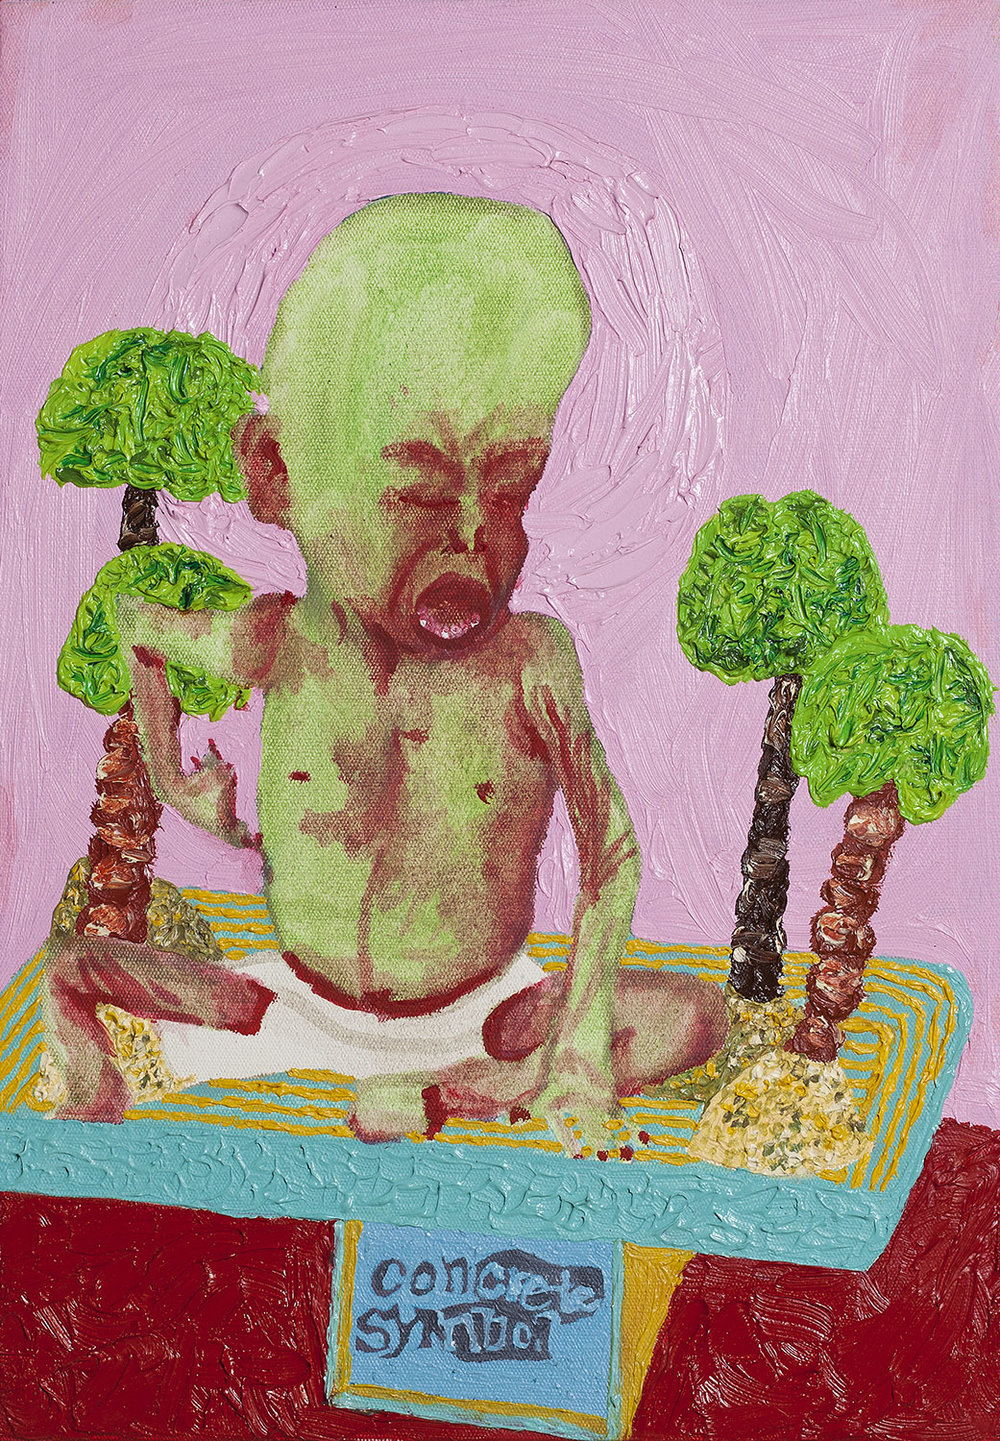 Concrete symbol, 2014, Oil on canvas, 40x28cm, R5,000_1500.jpg